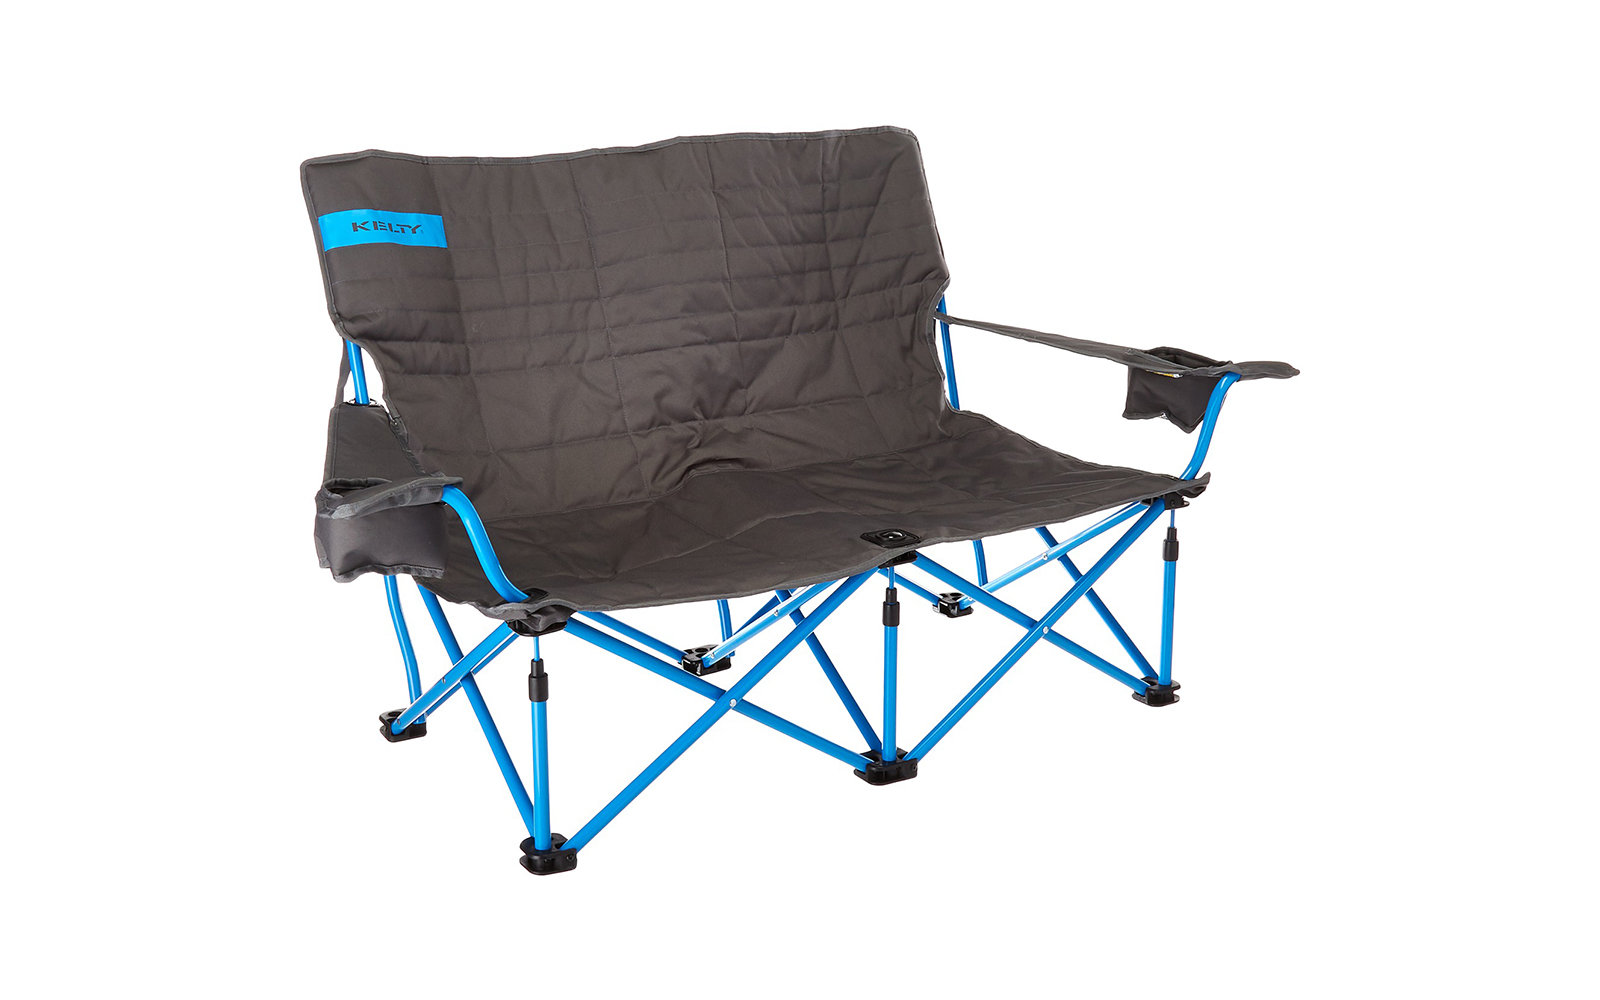 Best Folding Chairs For Camping Sporting Events And More